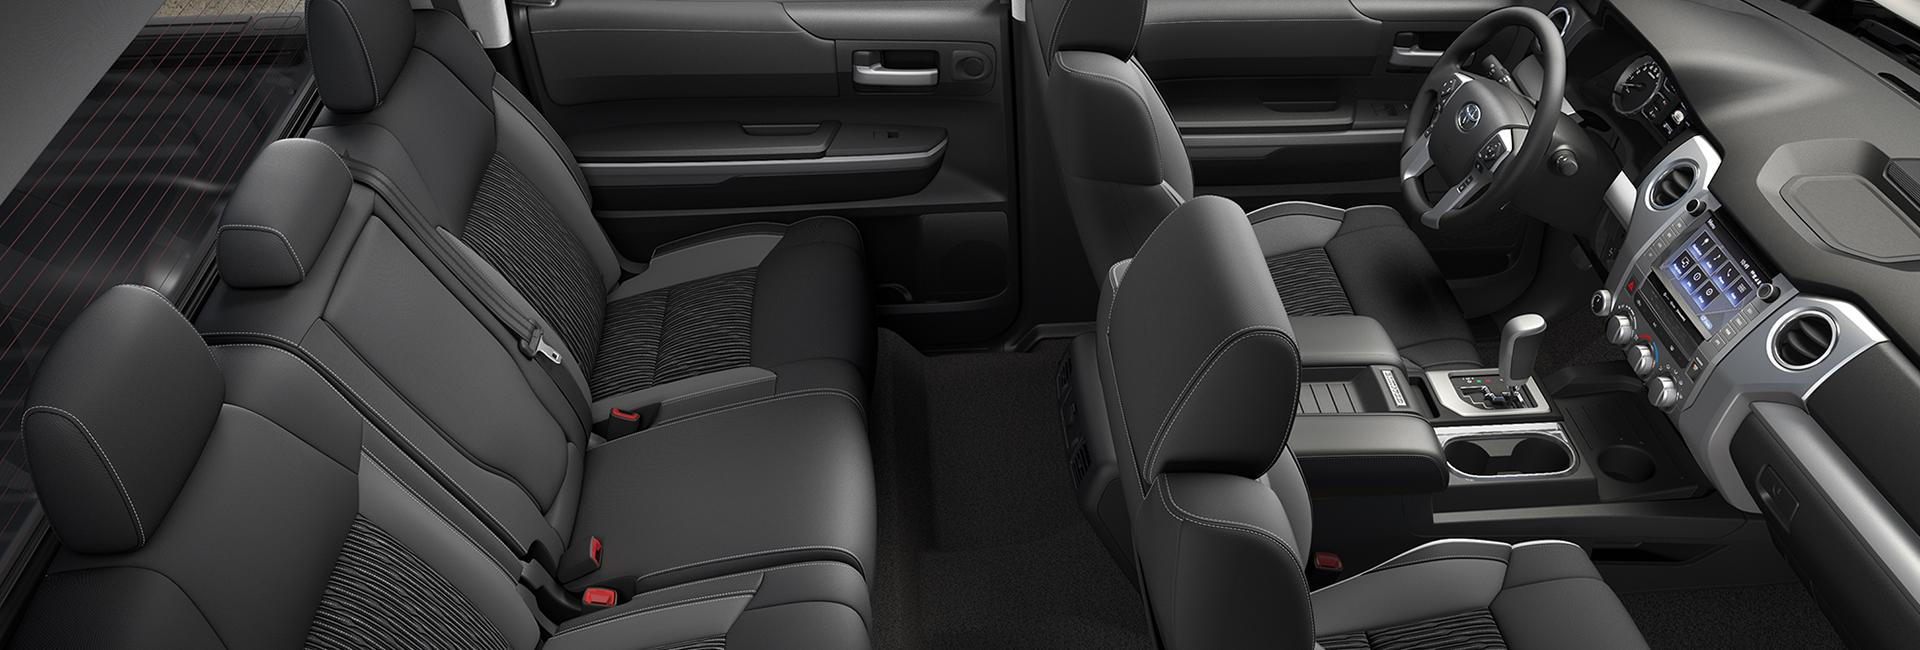 Interior image of the 2020 Toyota Tundra